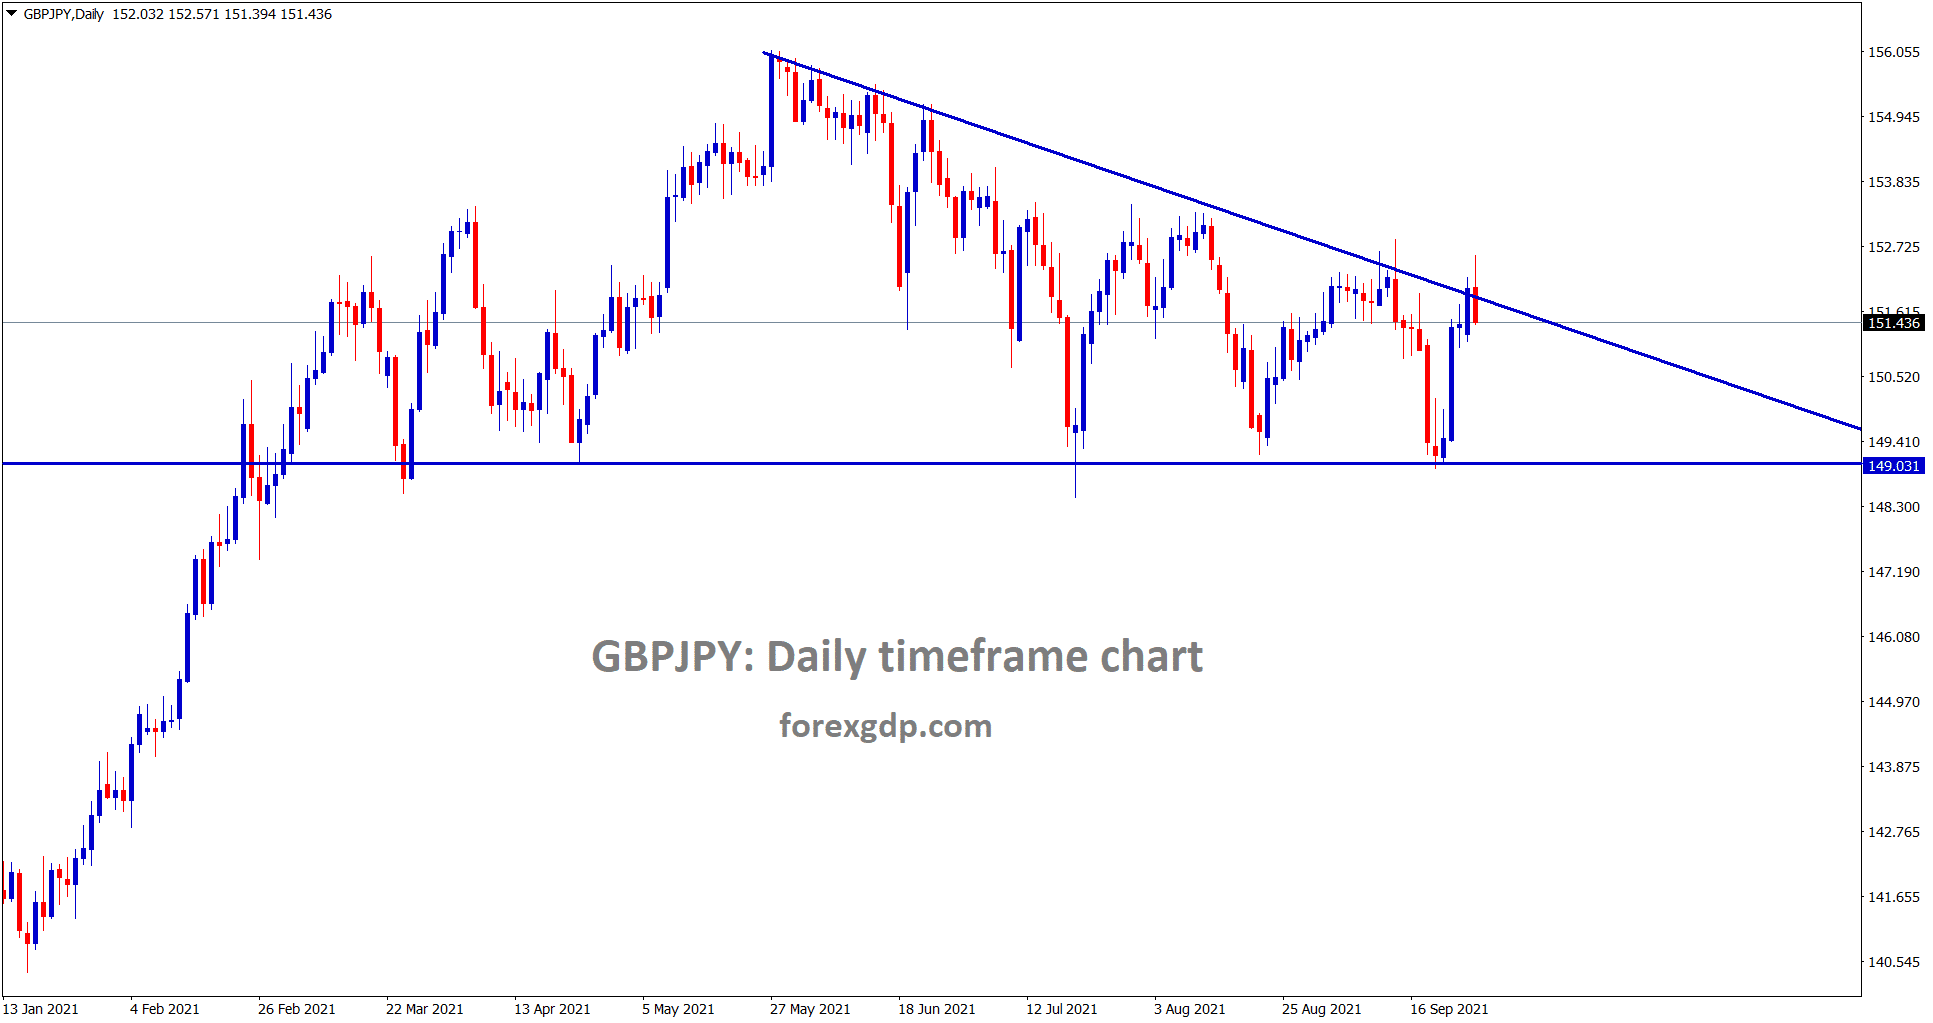 GBPJPY is making a correction from the lower high area of the Descending Triangle pattern